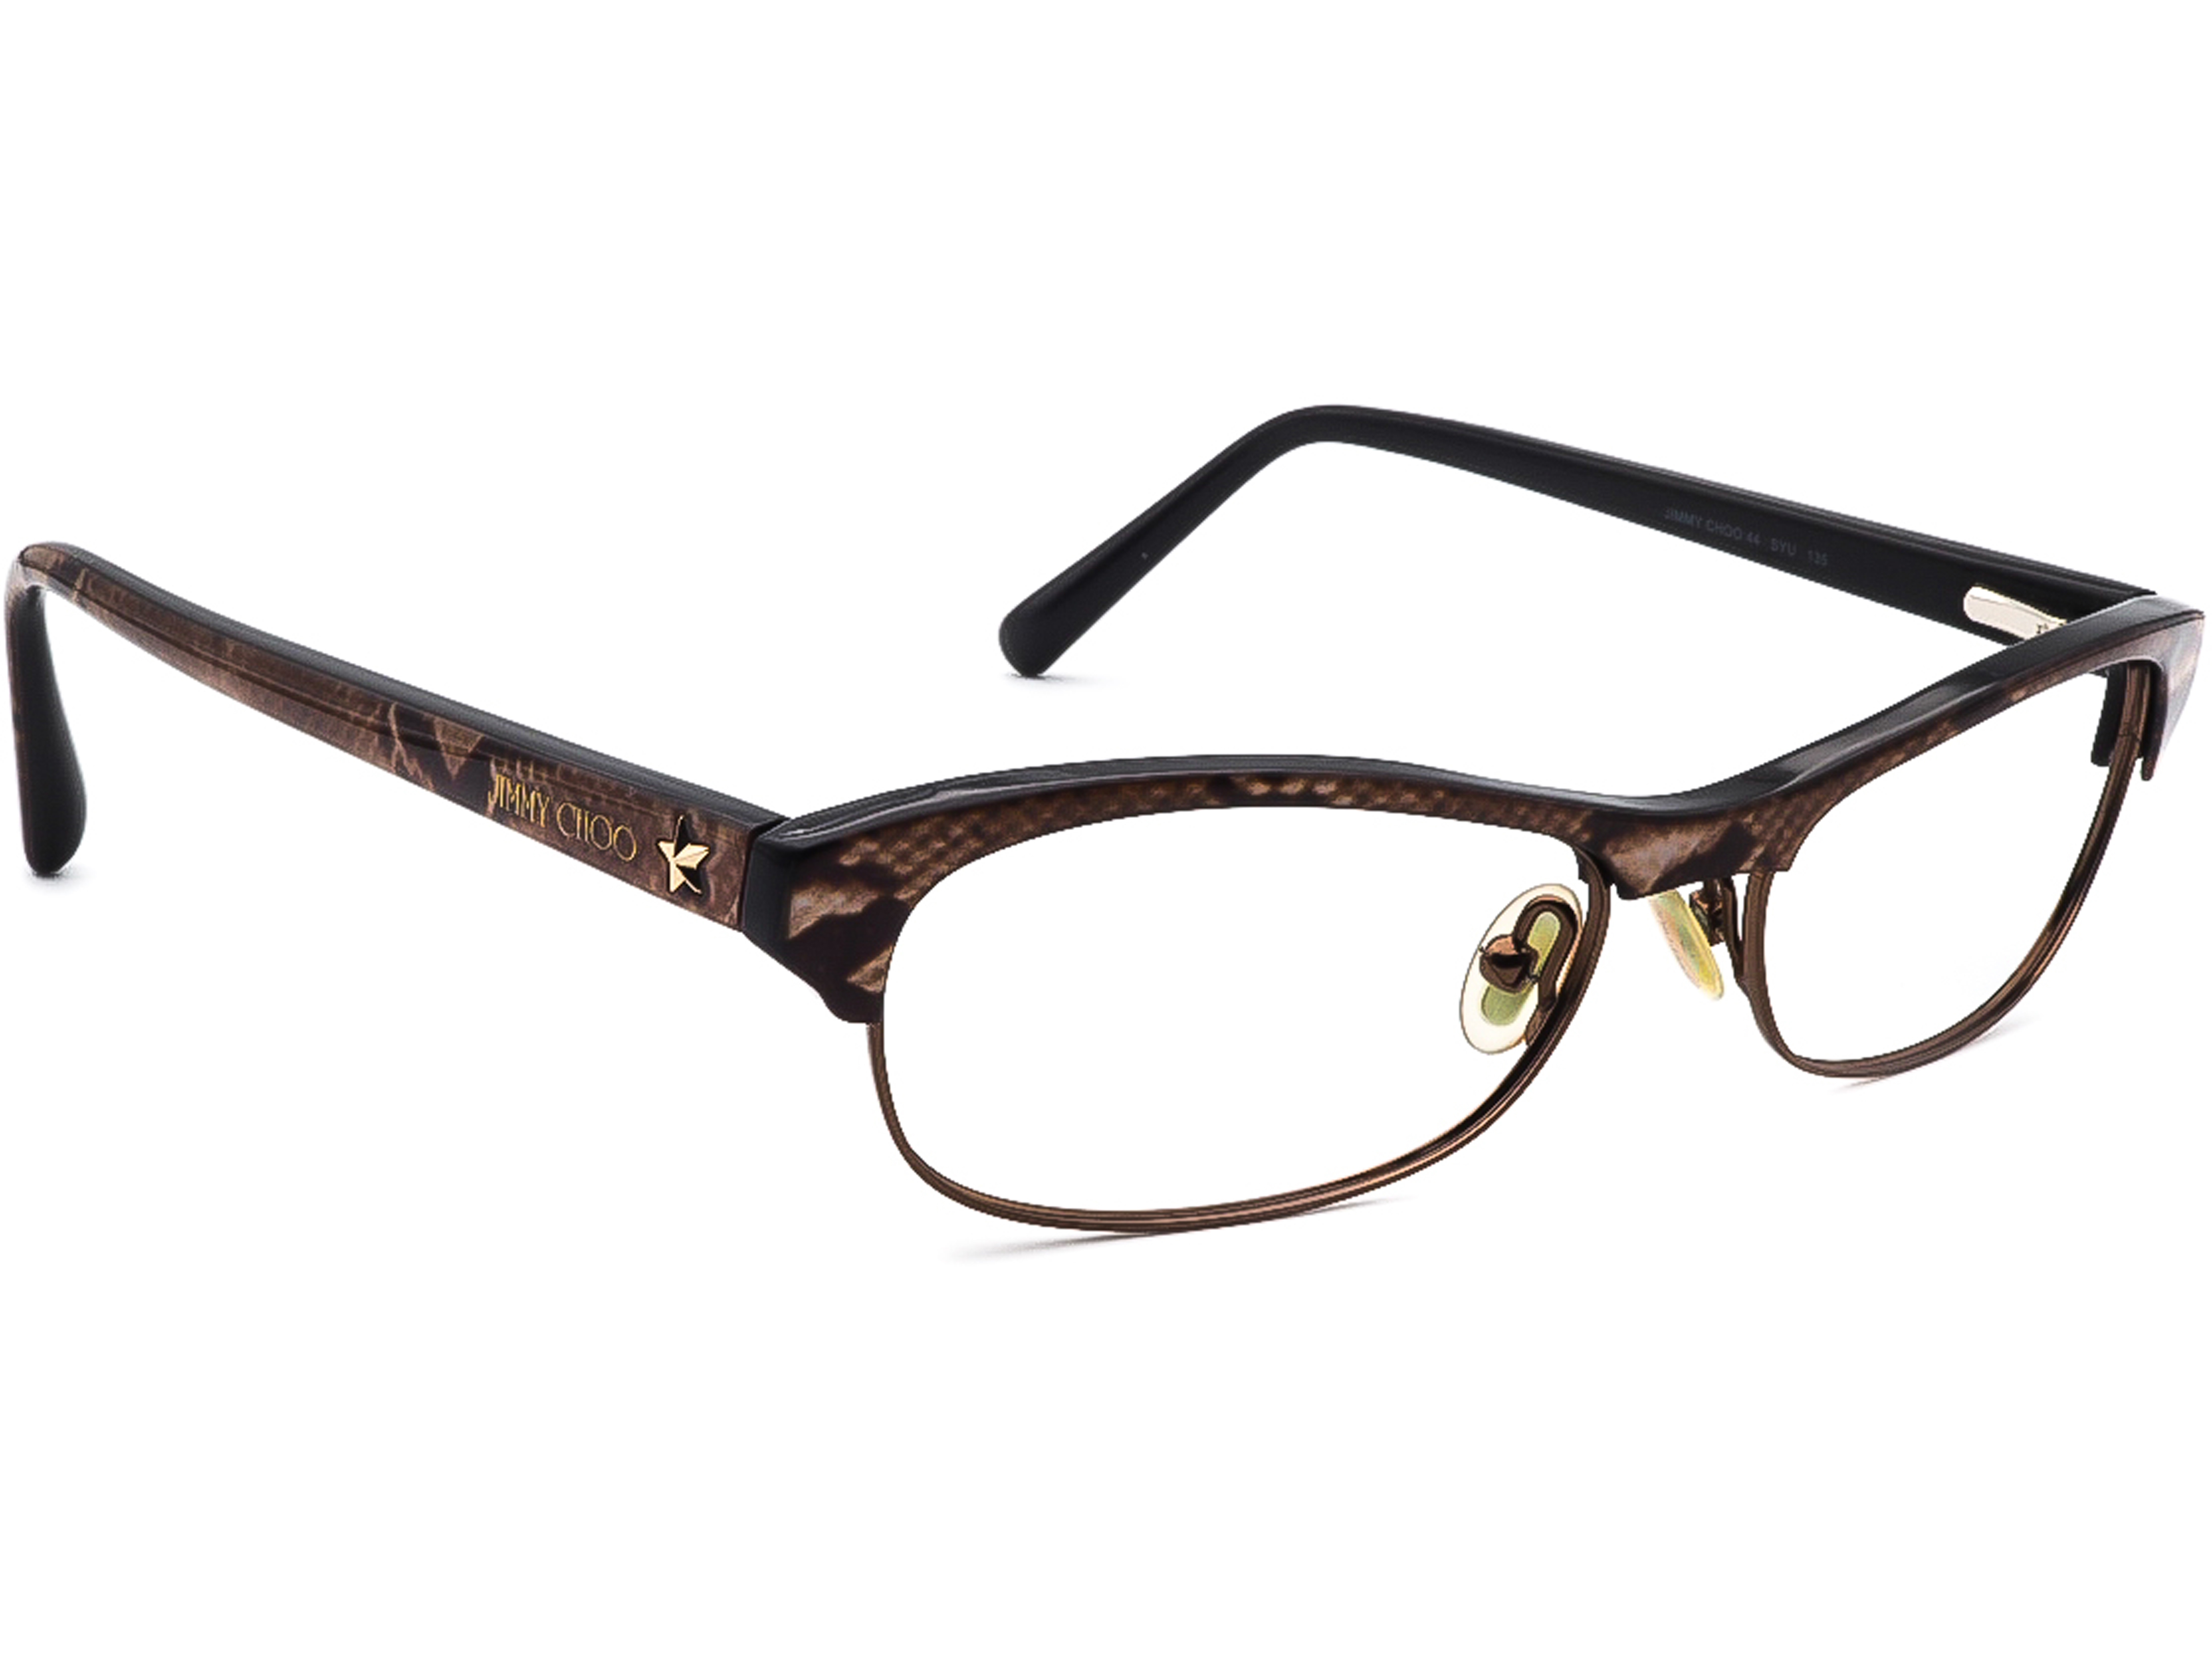 Jimmy Choo 44 SYU Eyeglasses